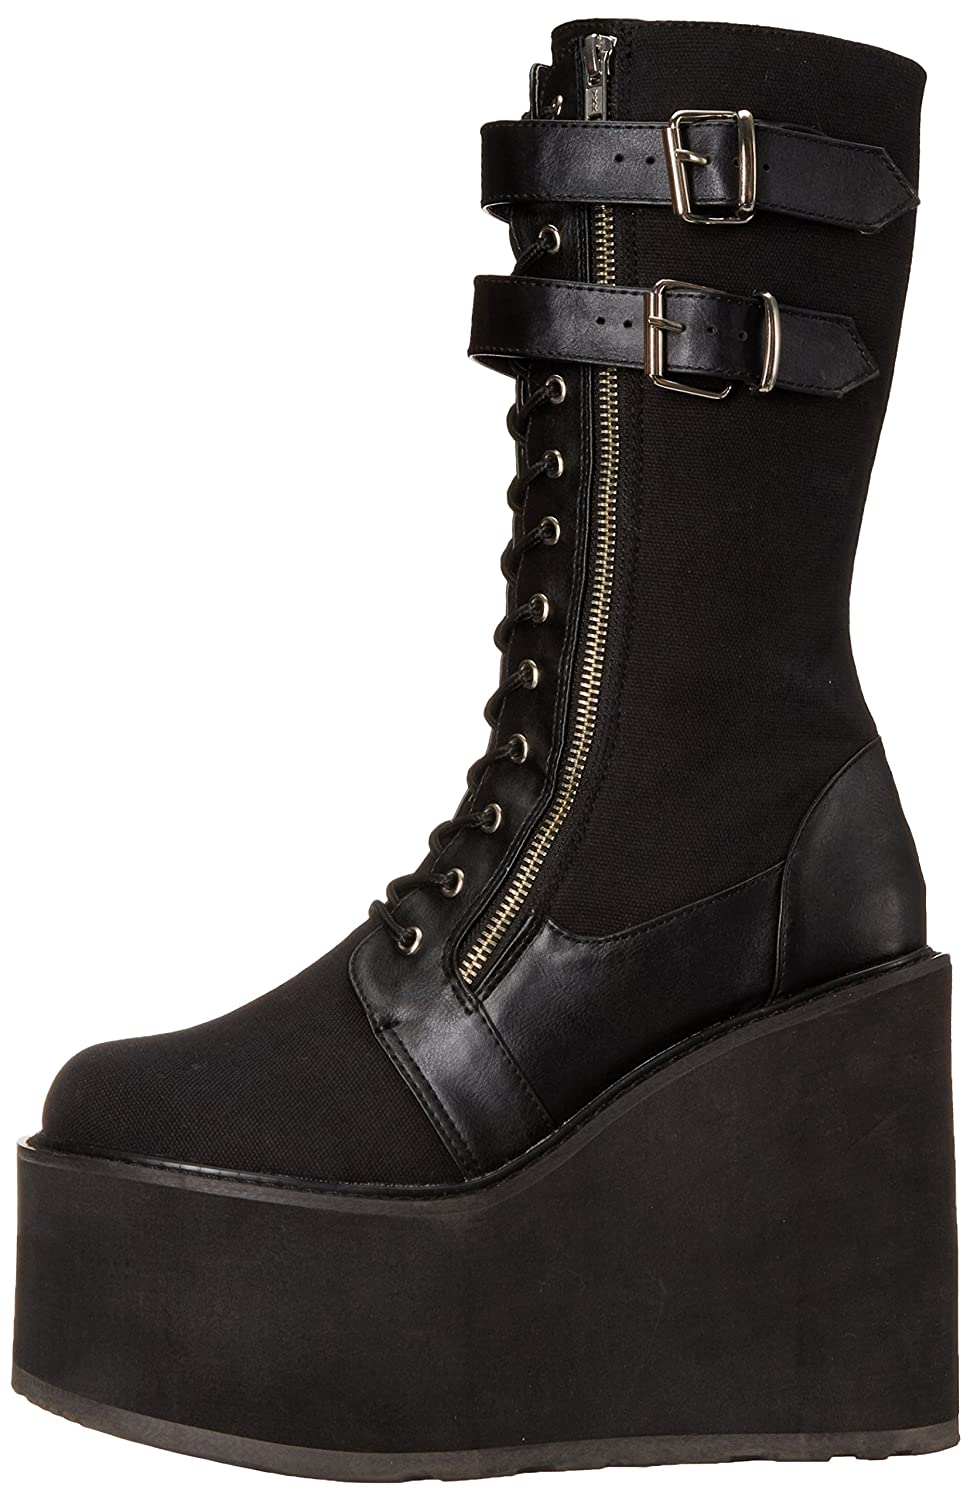 Demonia Women's SWI221/BCA-VL Boot B016D6AR16 6 B(M) US|Black Canvas Vegan Leather